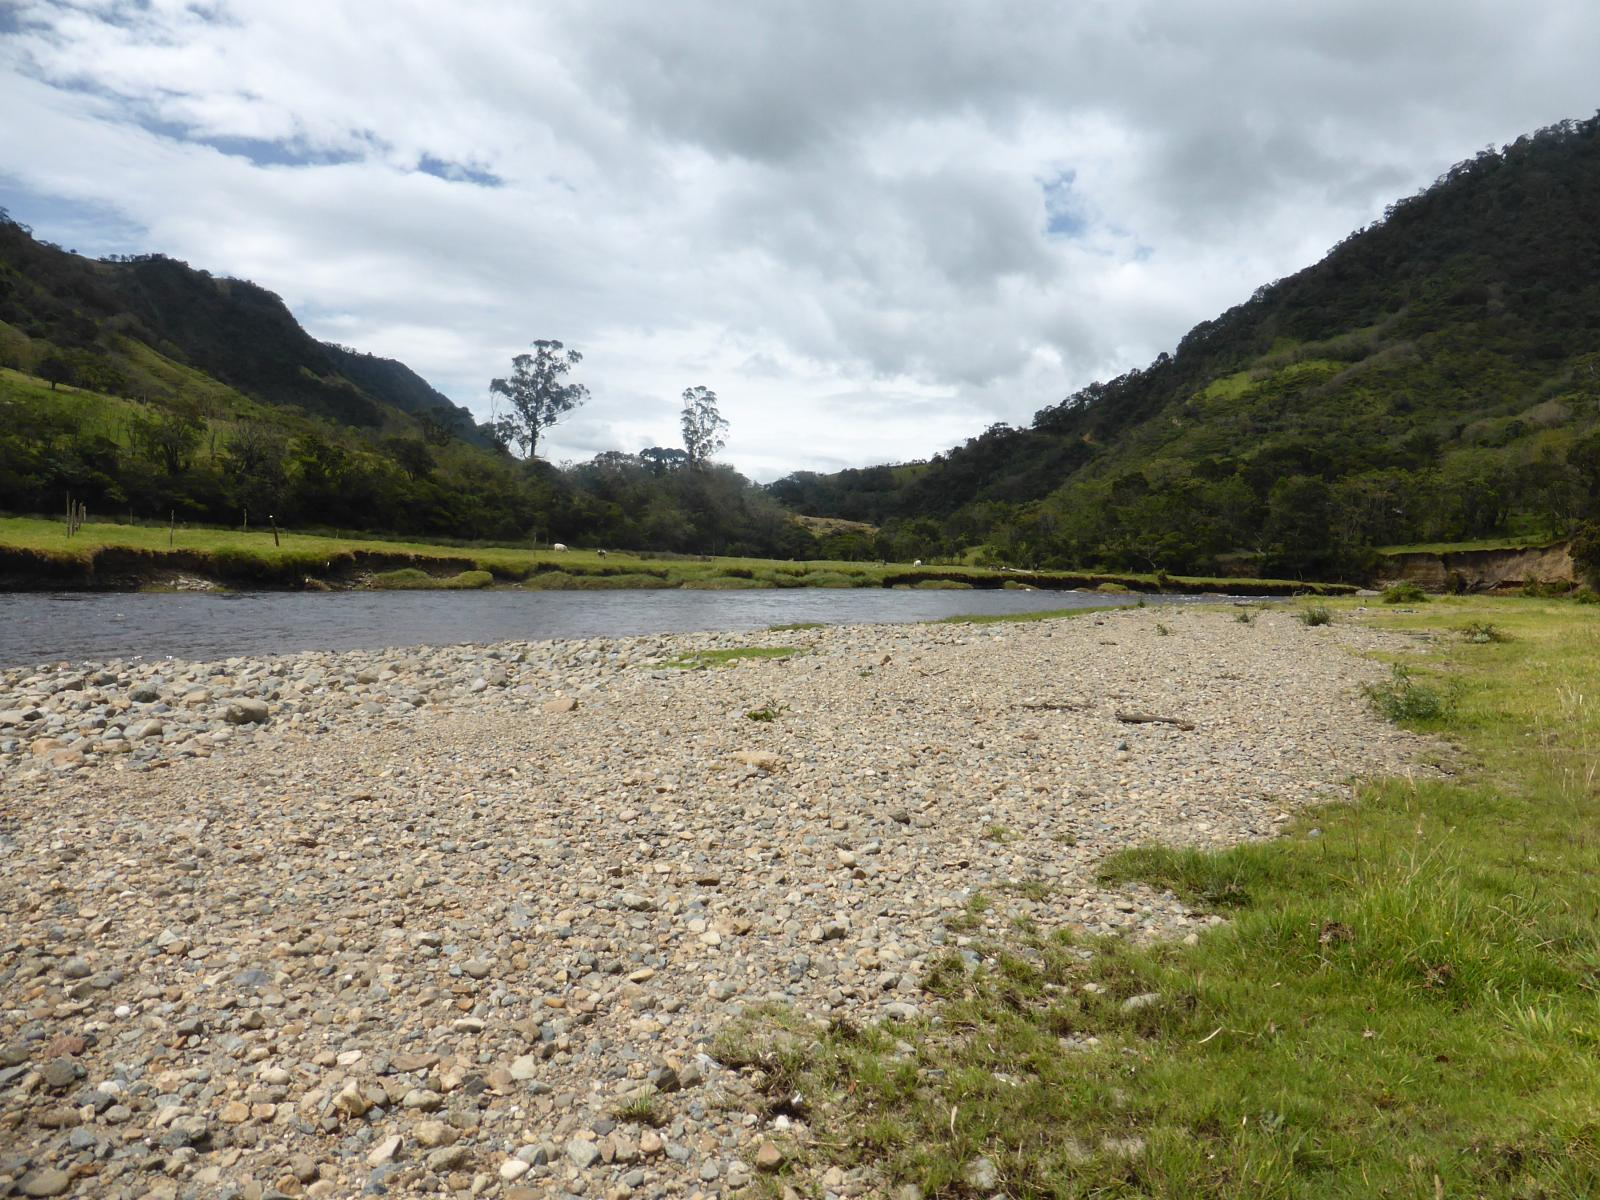 Photo of Trail Coconuco - Path to the Rio Cauca